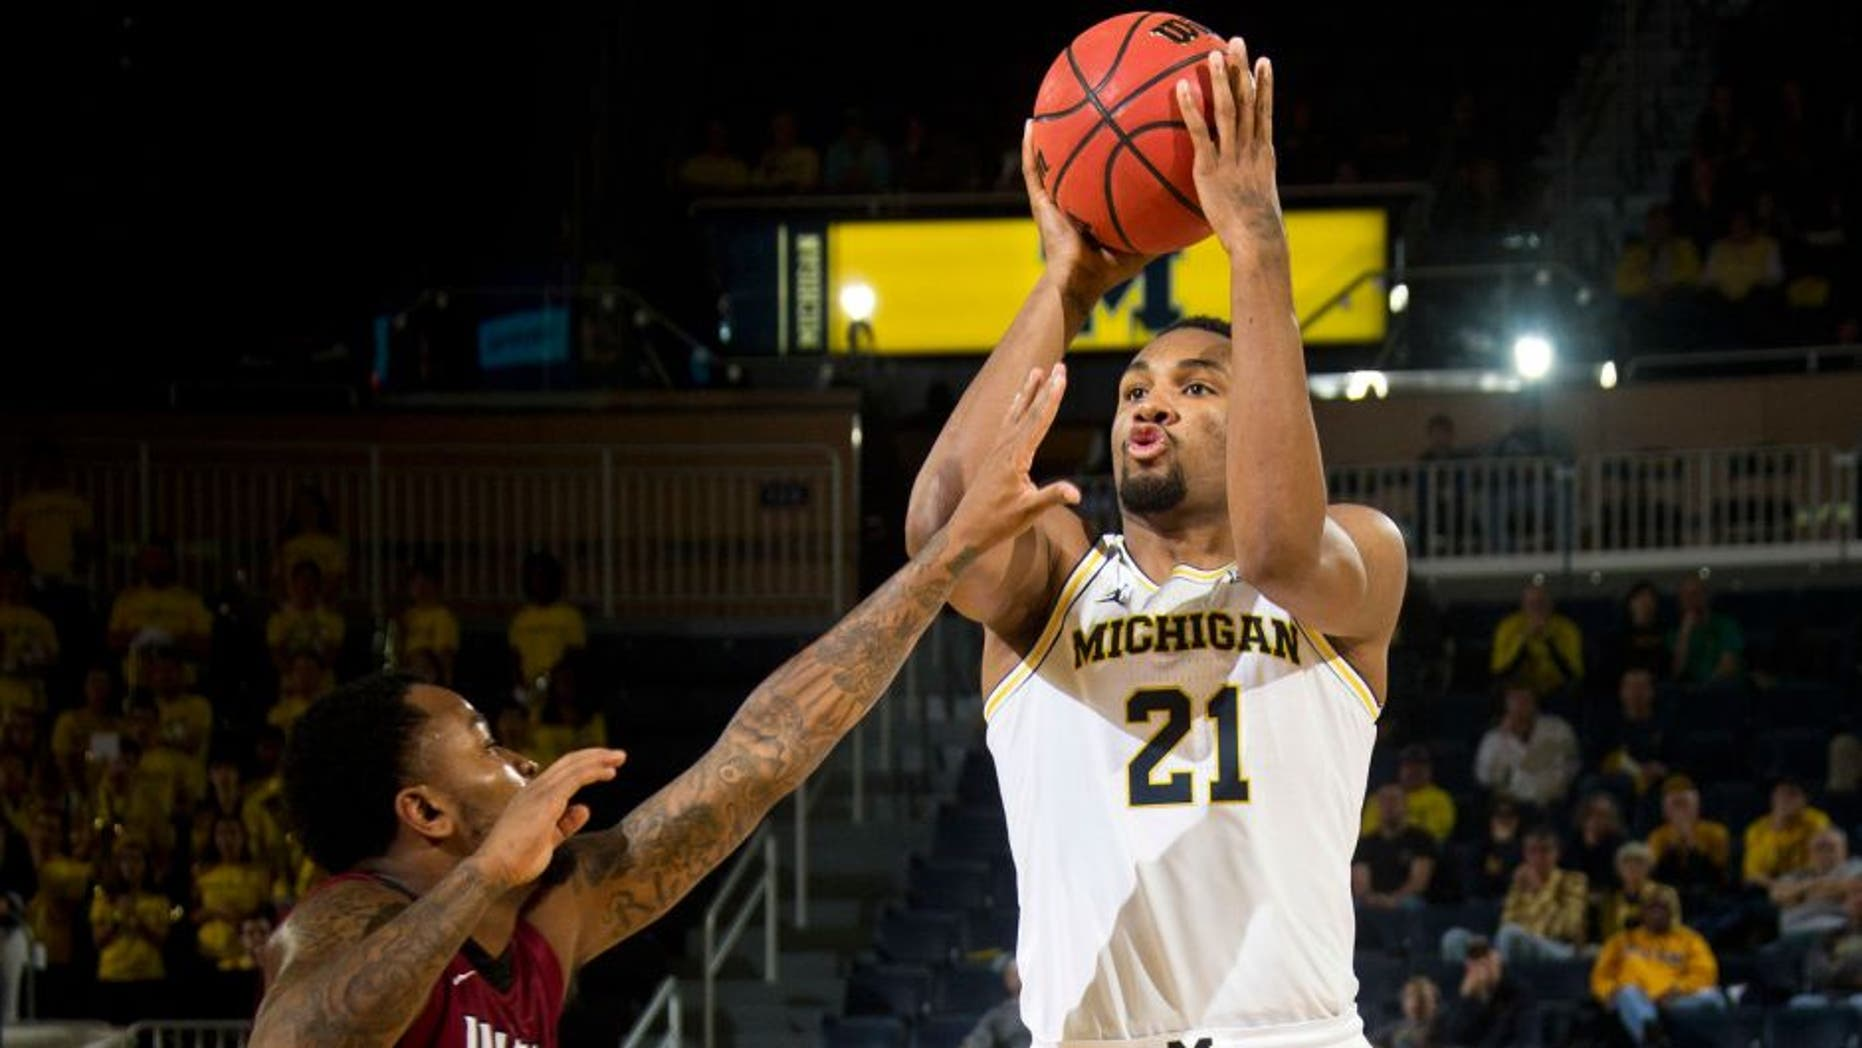 IUPUI guard Darell Combs, left, defends a jump shot from Michigan guard Zak Irvin (21) in the second half of an NCAA college basketball game at Crisler Center in Ann Arbor, Mich., Sunday, Nov. 13, 2016. Michigan won 77-65. (AP Photo/Tony Ding)